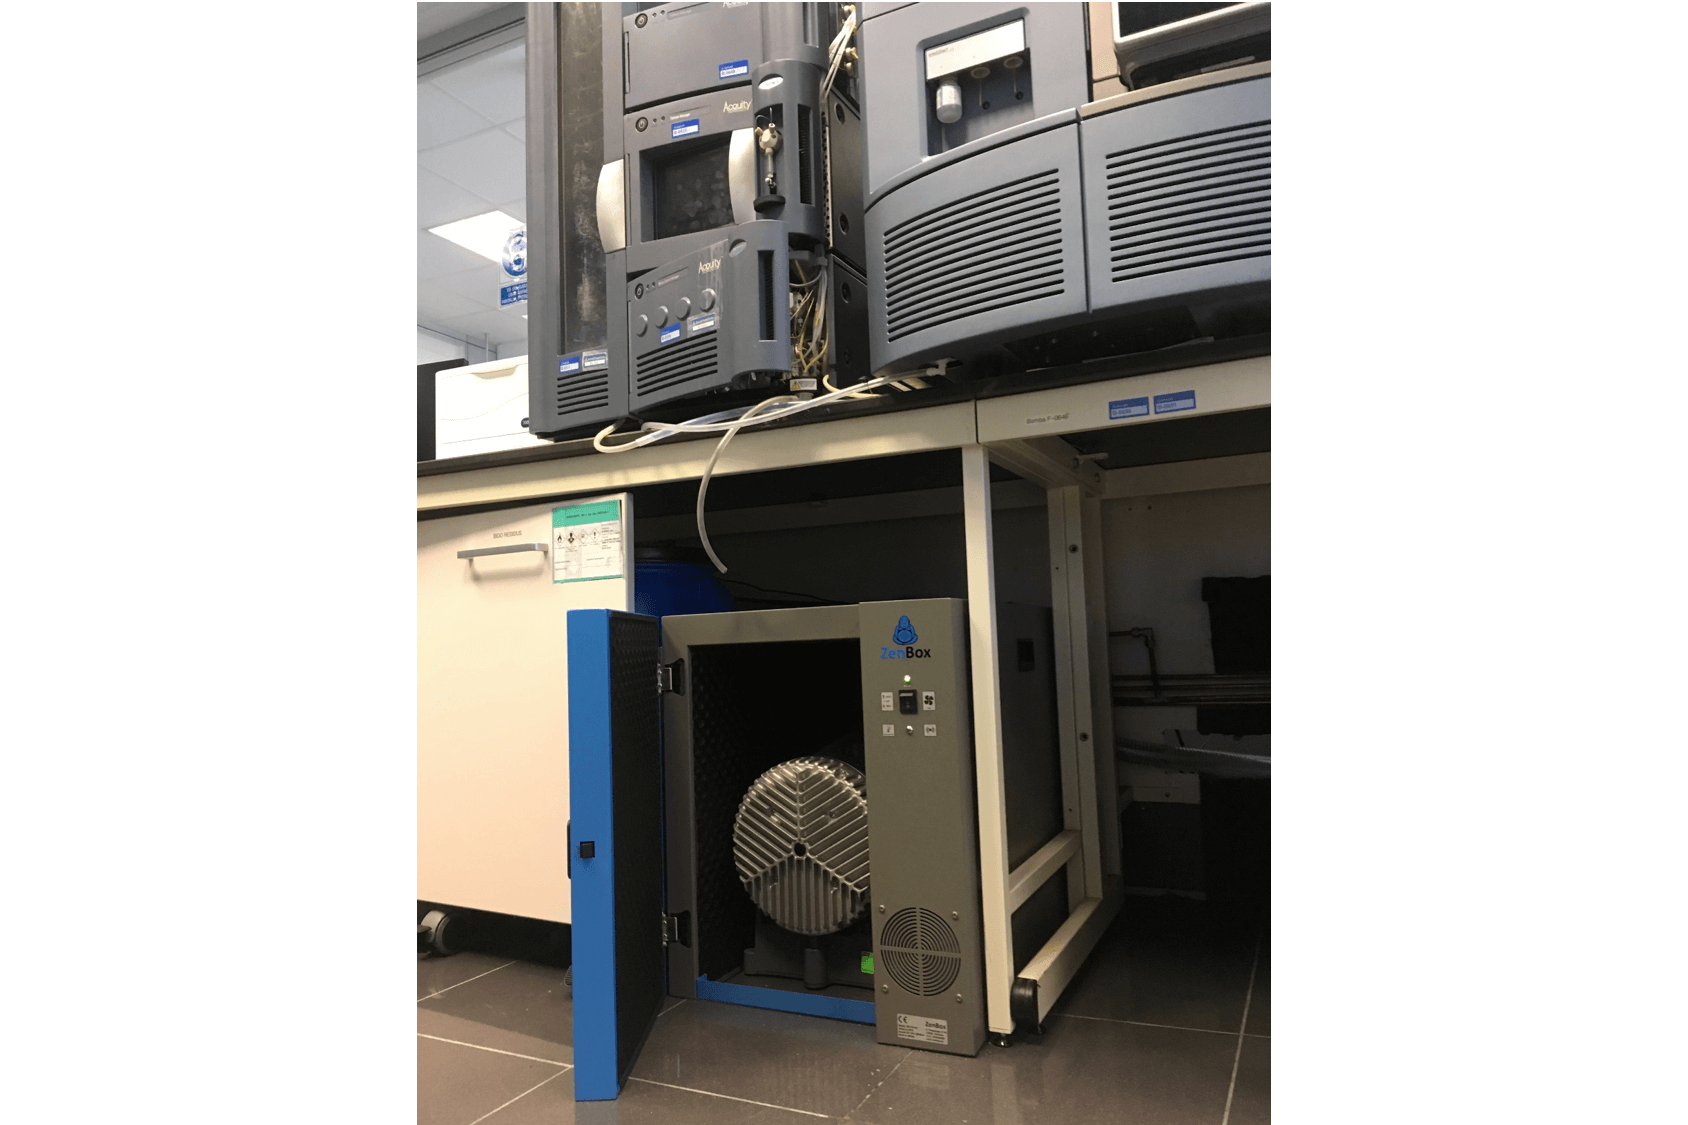 noise reduction enclosure for one boc edwards xds35i dry scroll pump